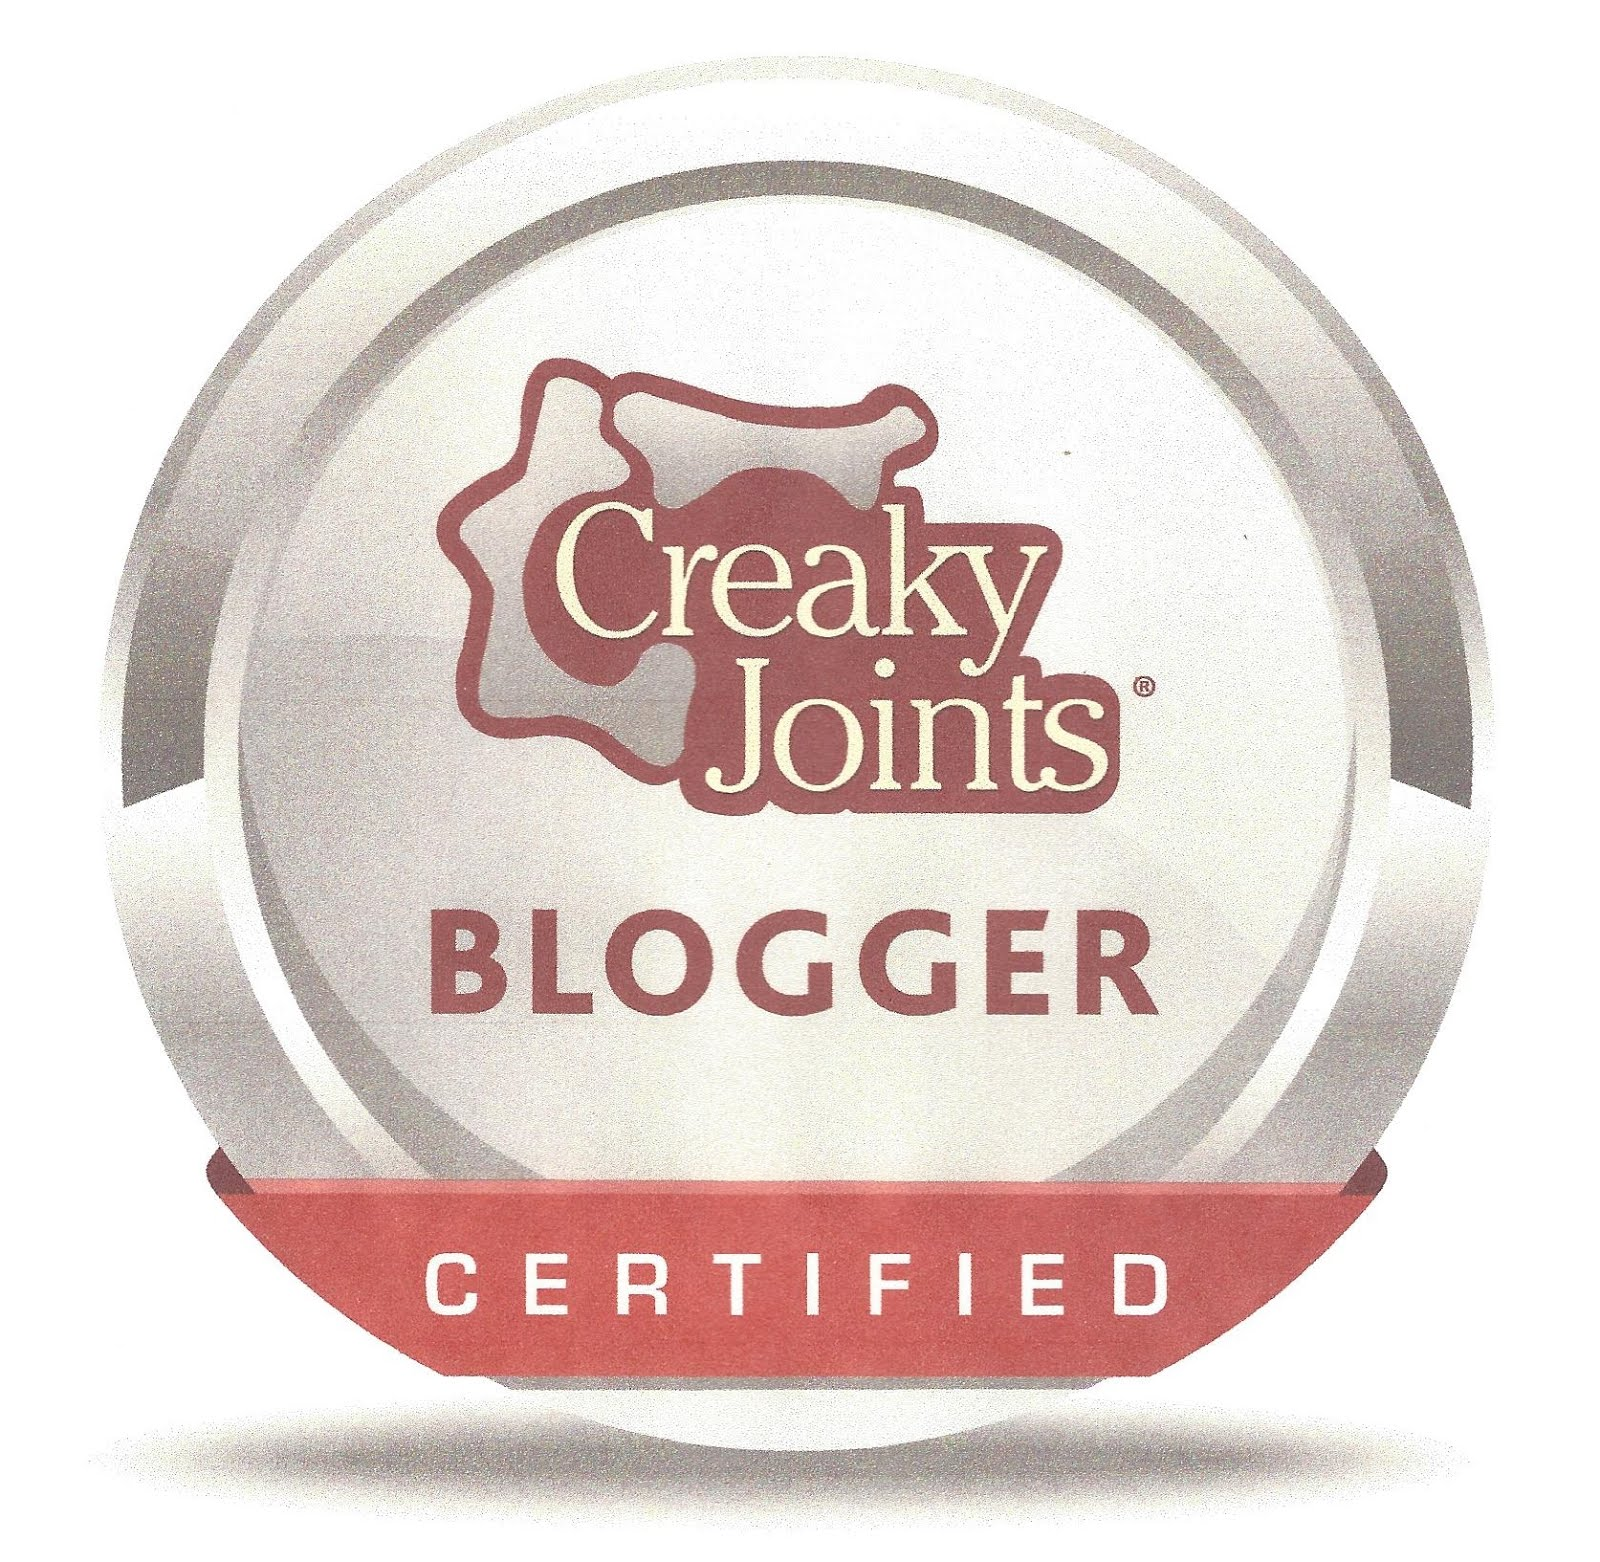 Certified Creaky Joints Blogger